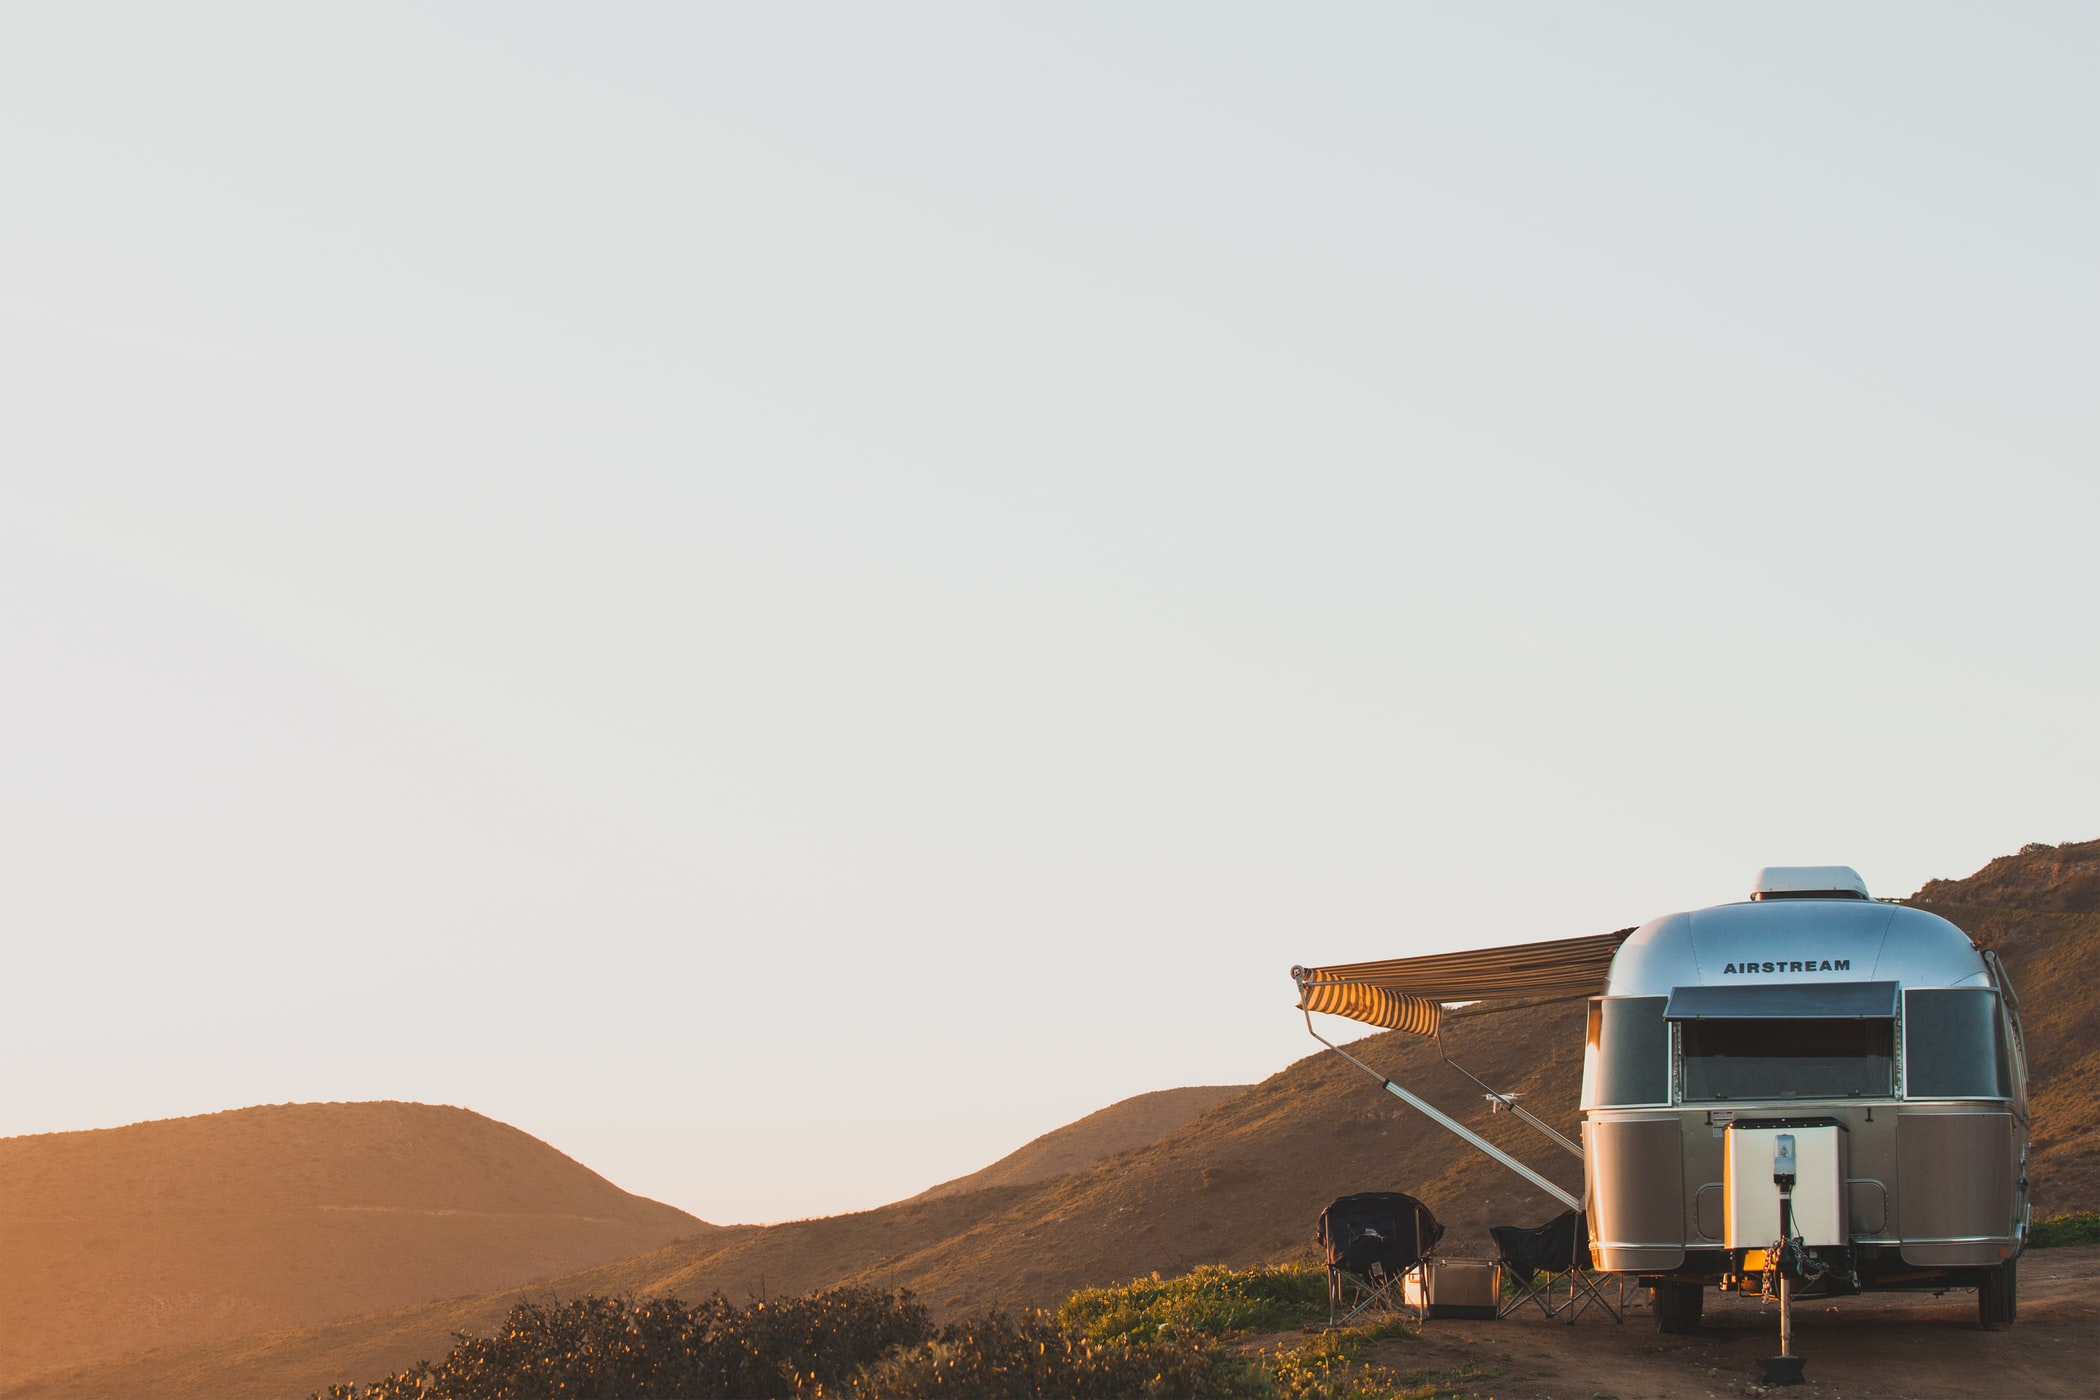 Airstream Travel Trailer on a Mountainside with Big Sky